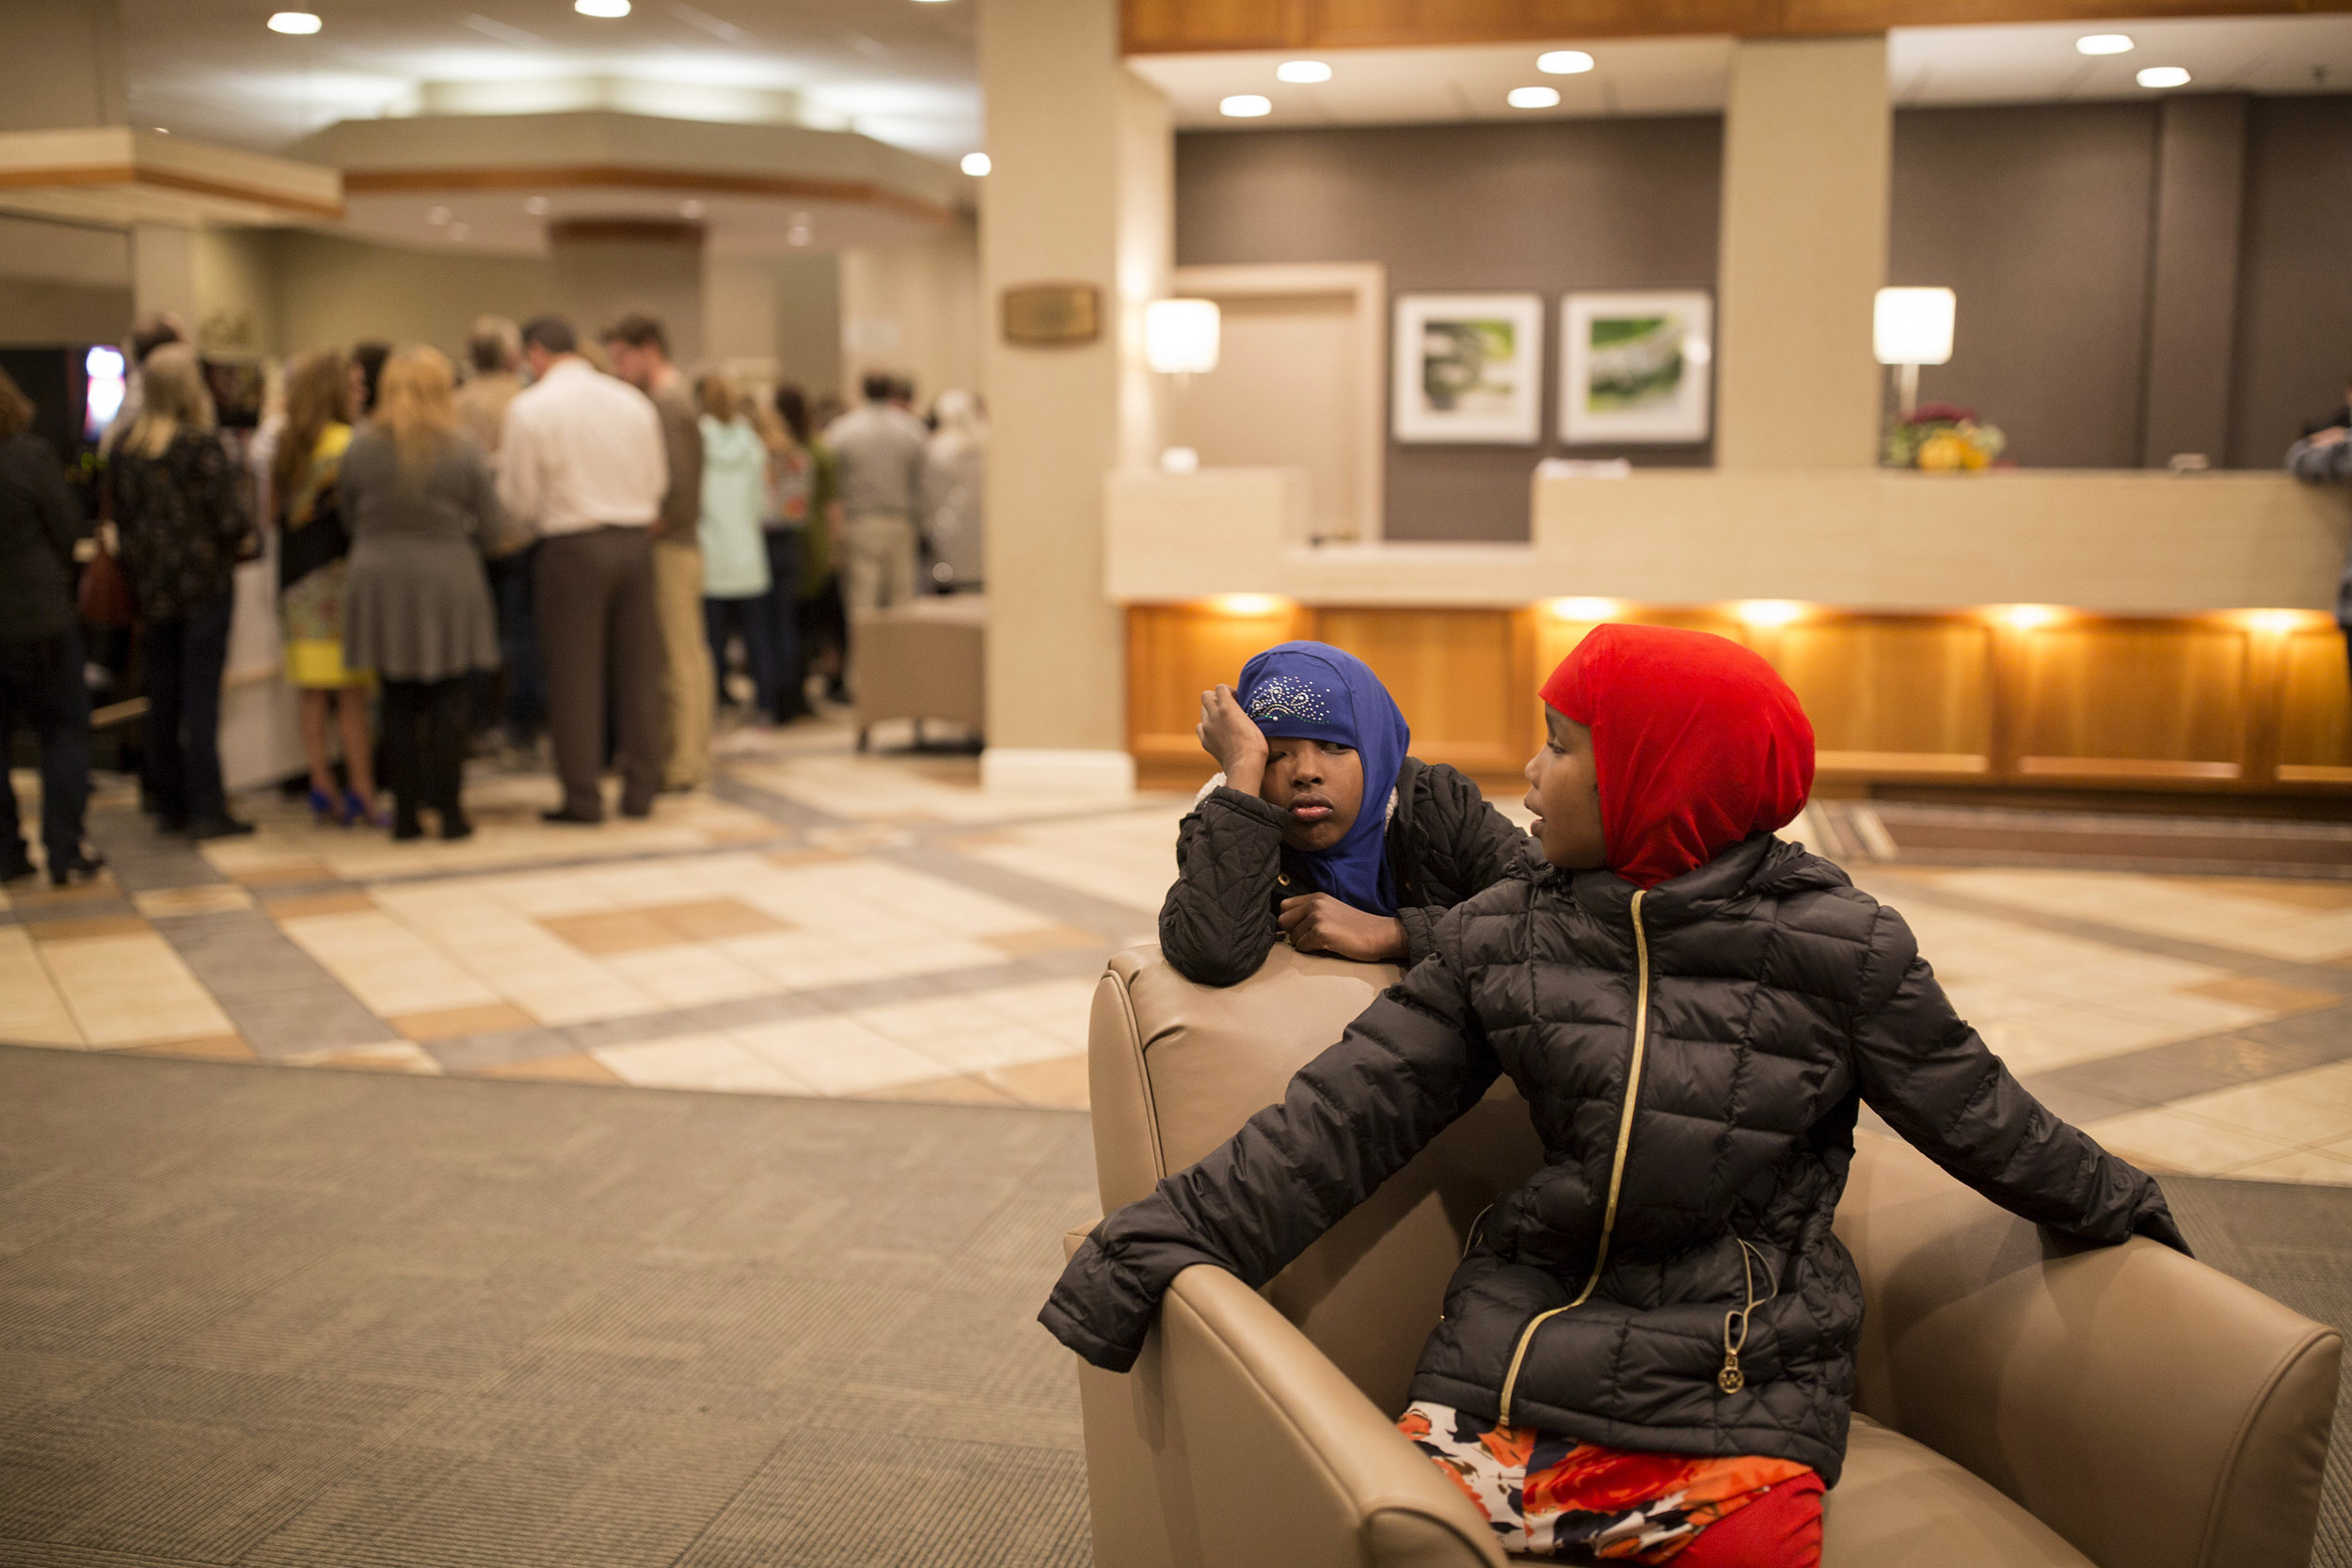 Hamdia's nieces, from left, Jamila, 7, and Zaytuun, 5, wait in the lobby of the Holiday Inn for the pageant to start. Hamdia's family, her mother sister and three nieces, paid the money to come and support her for both nights.